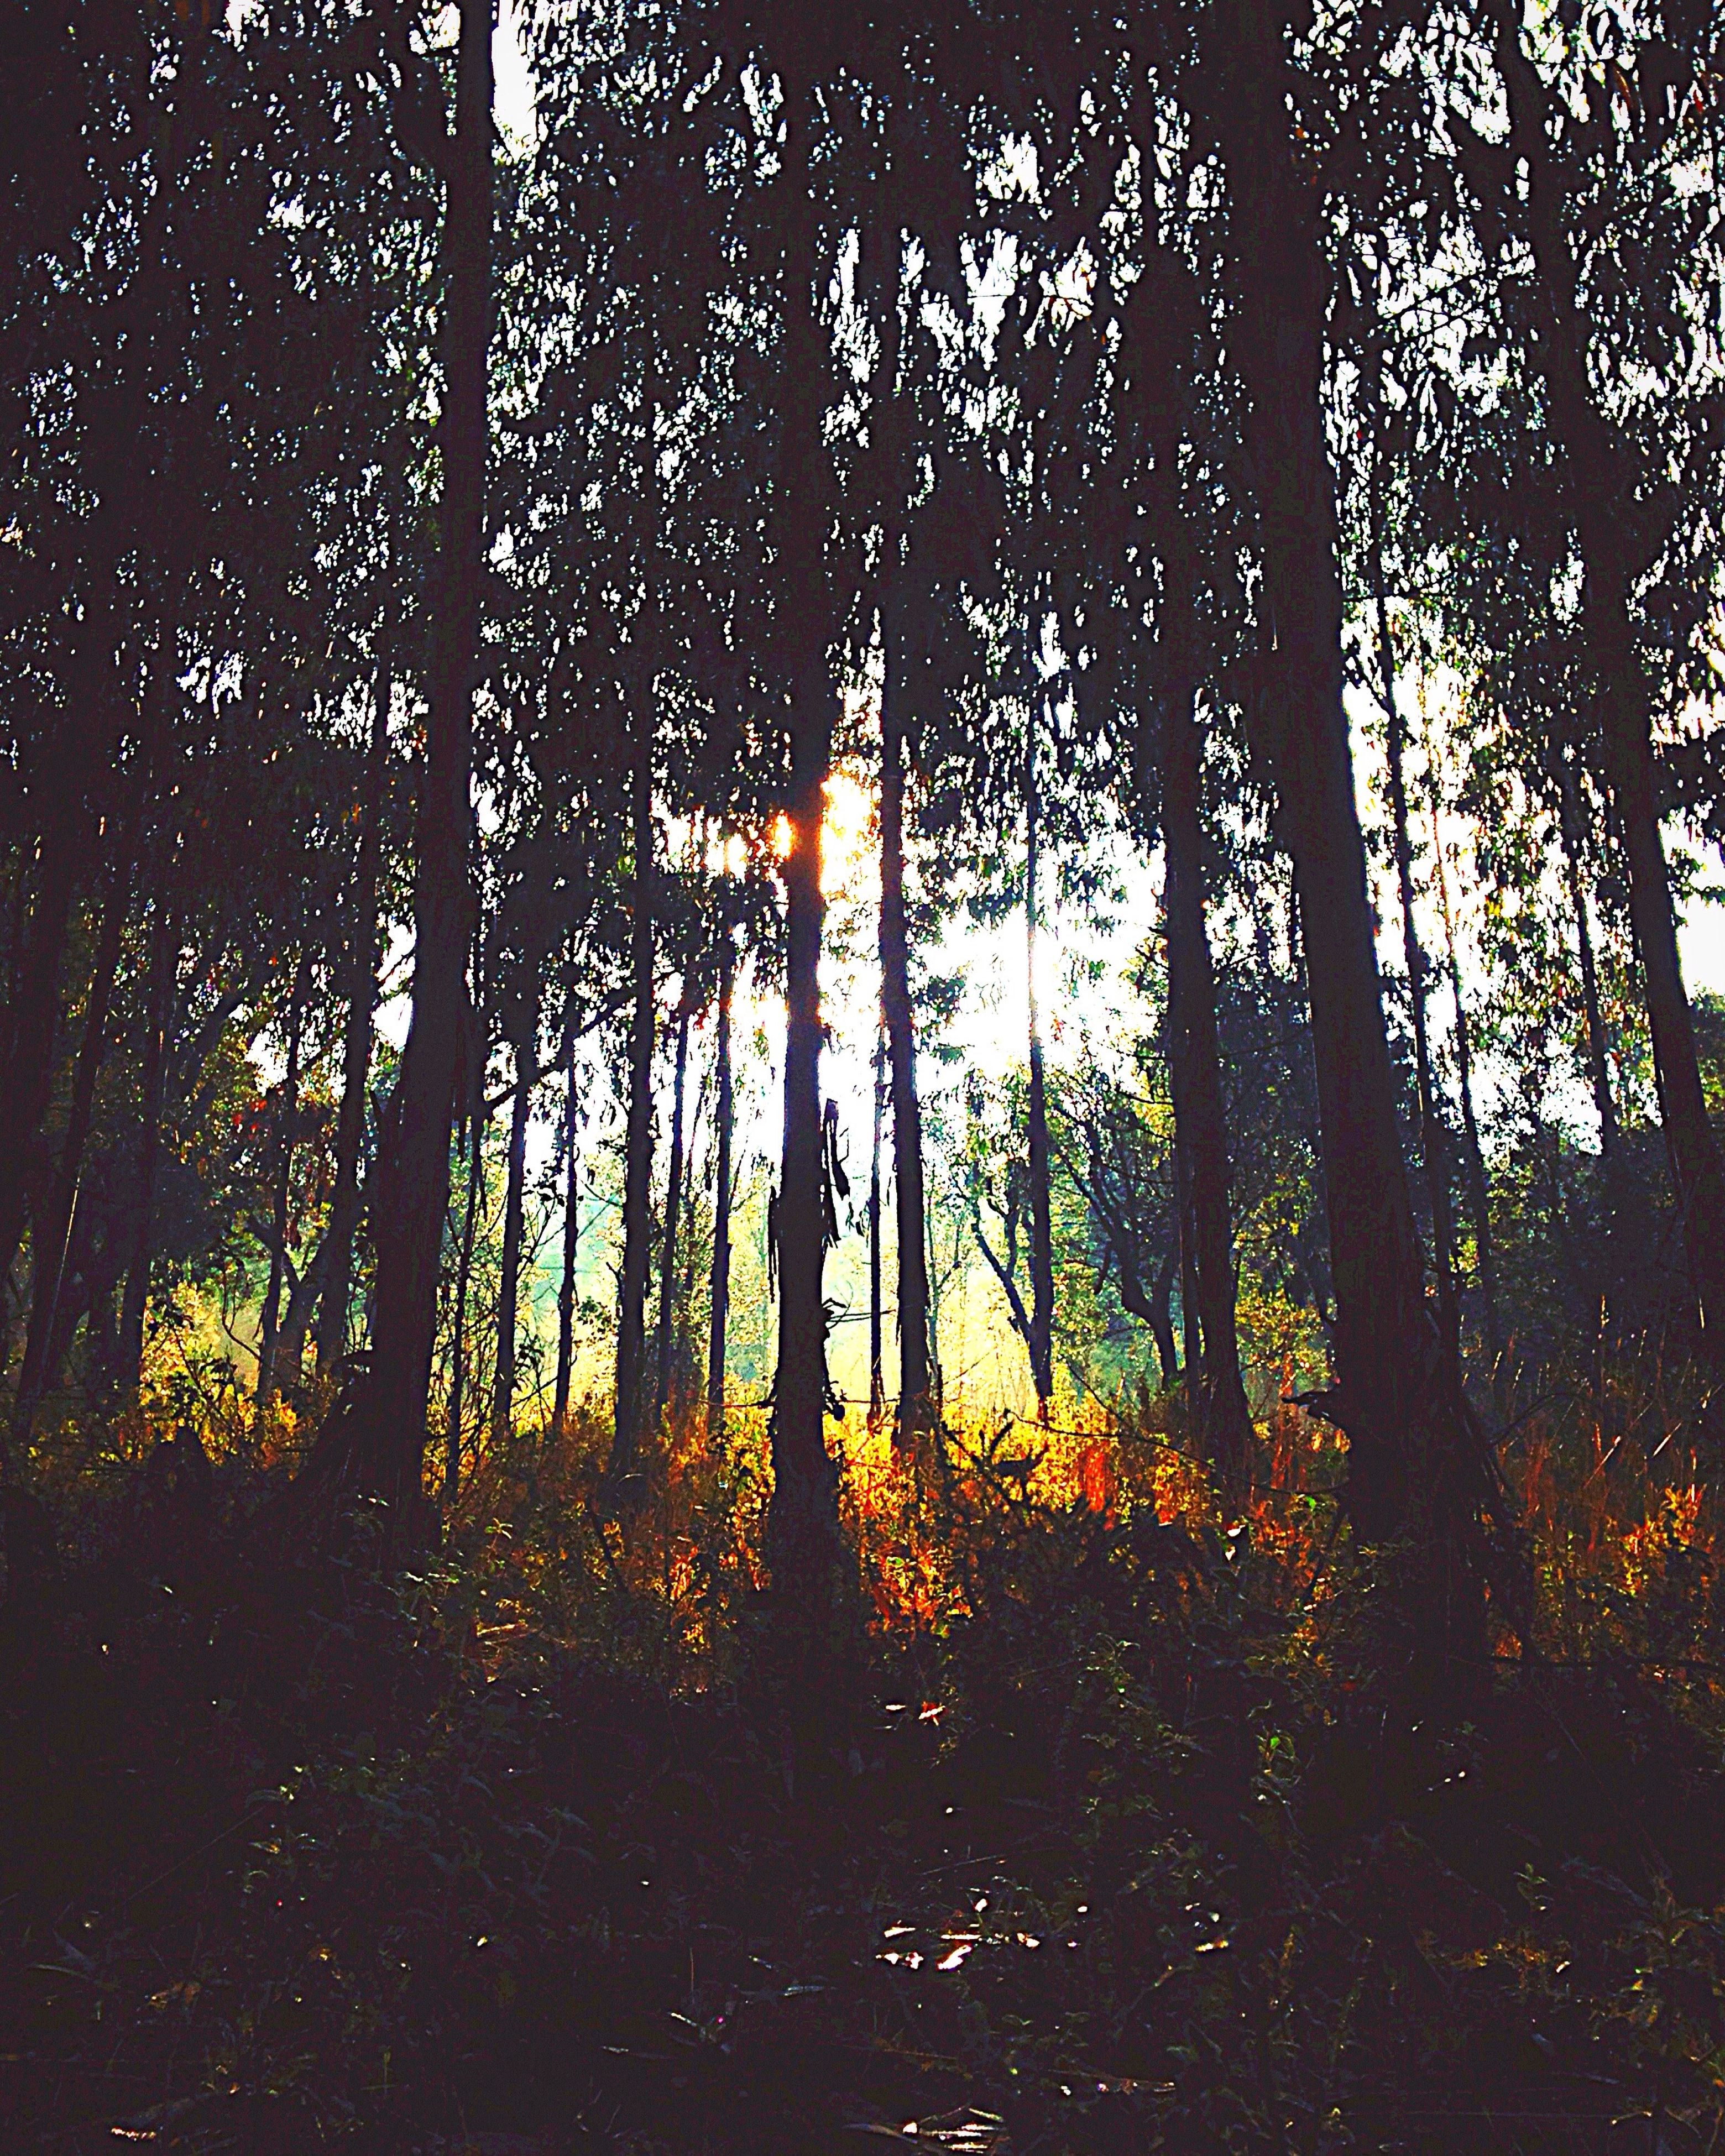 tree, growth, silhouette, tree trunk, tranquility, nature, sunlight, dark, low angle view, branch, night, no people, beauty in nature, outdoors, forest, shadow, plant, sunset, tranquil scene